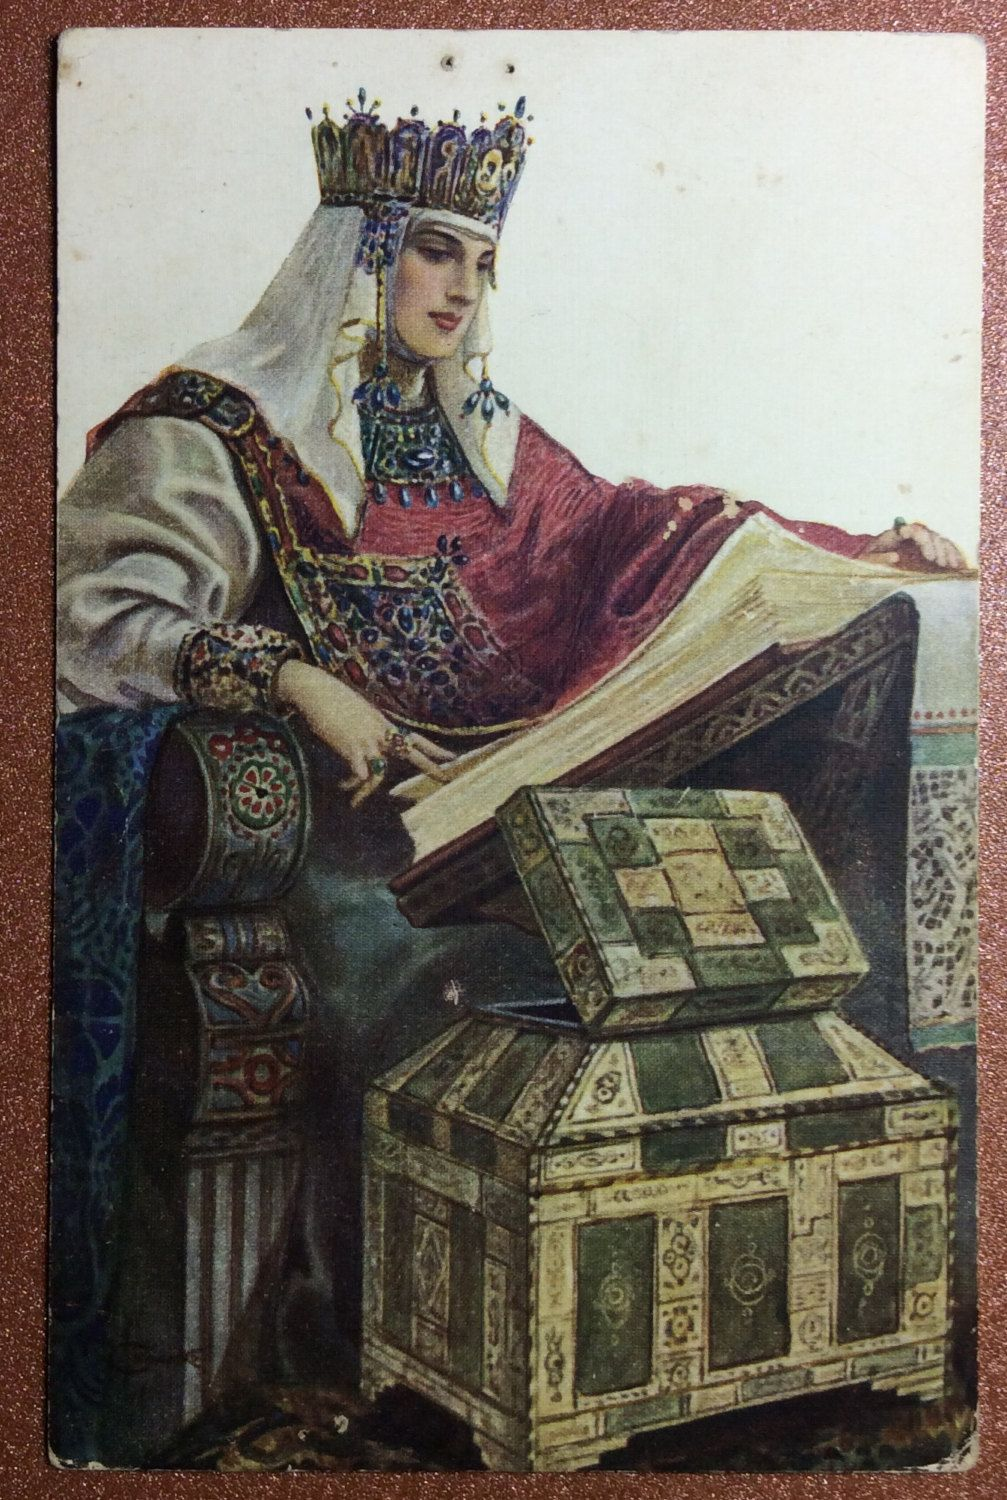 Antique Russian postcard with a woman wearing a stylised Russian costume